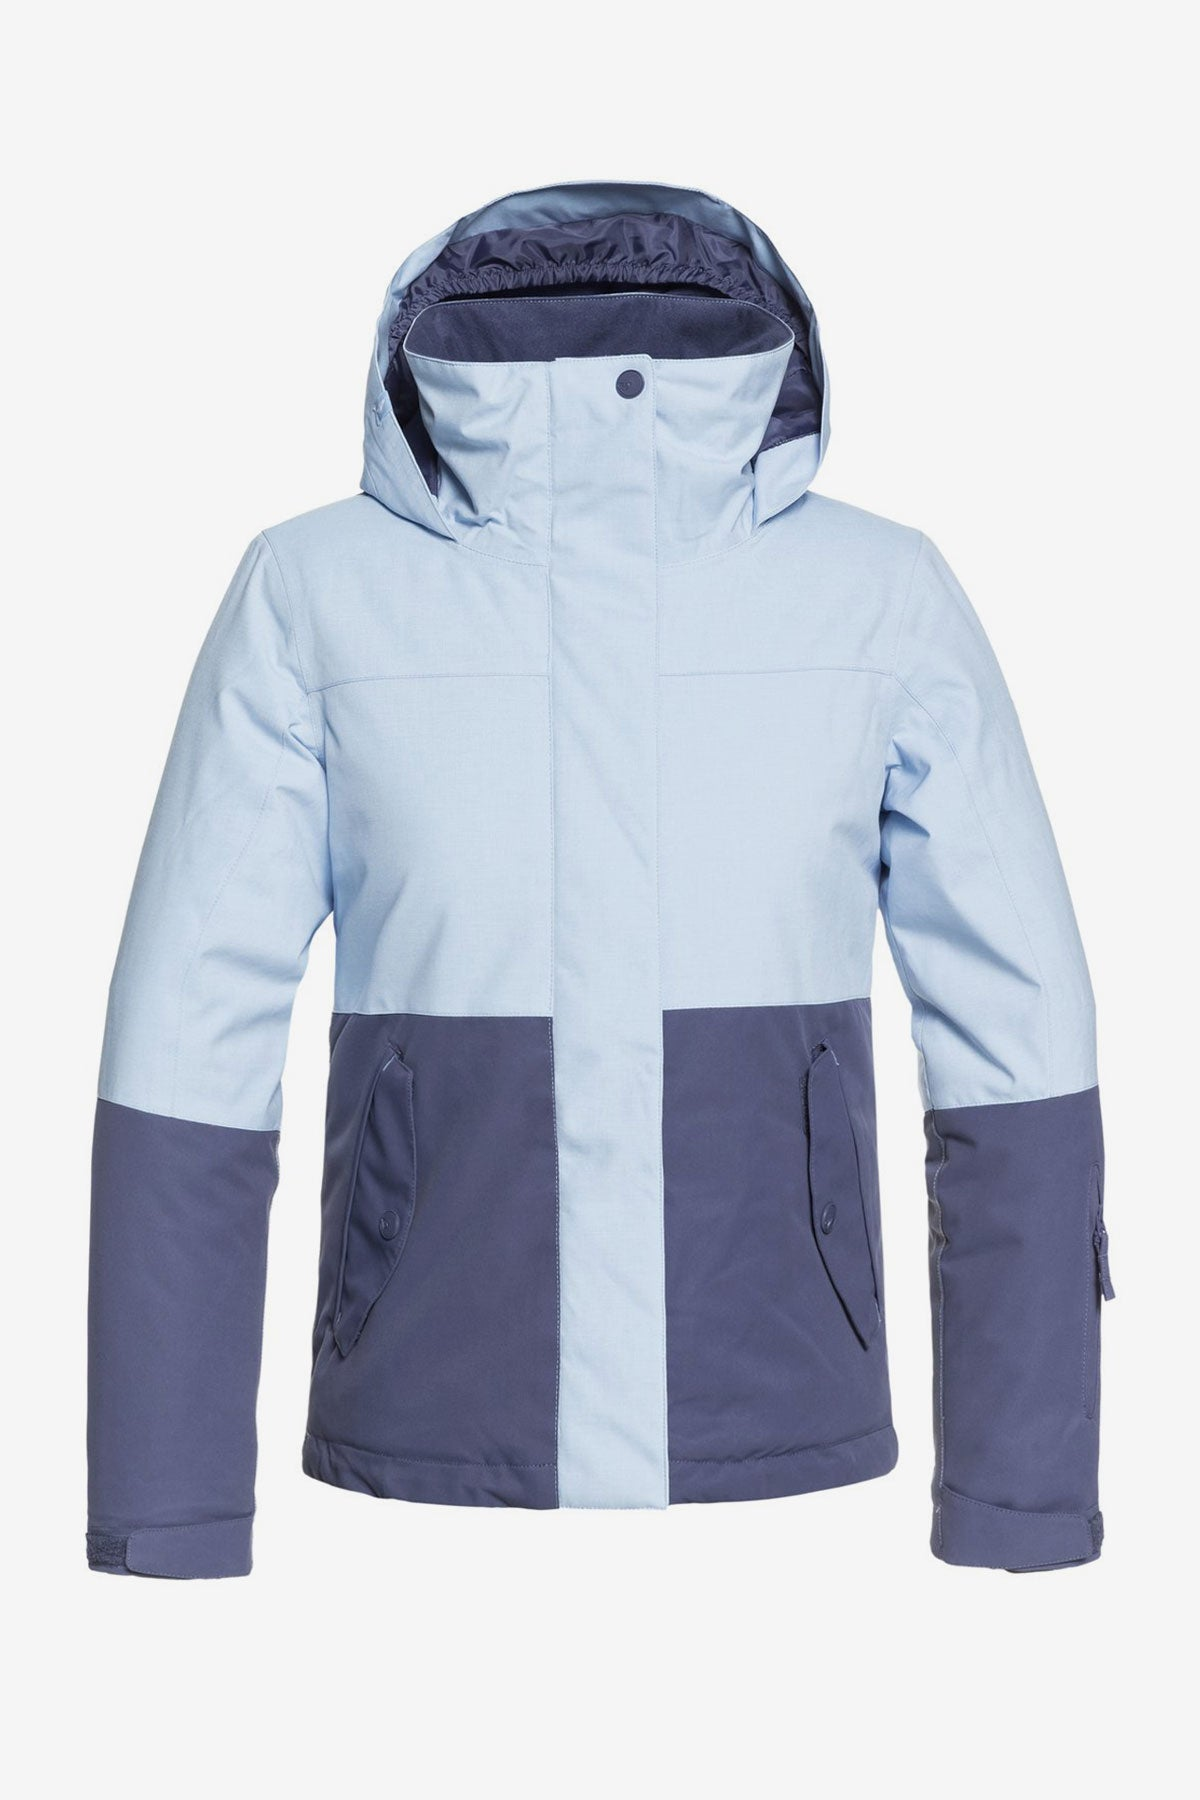 Roxy Jetty Girl Jacket - Powder Blue